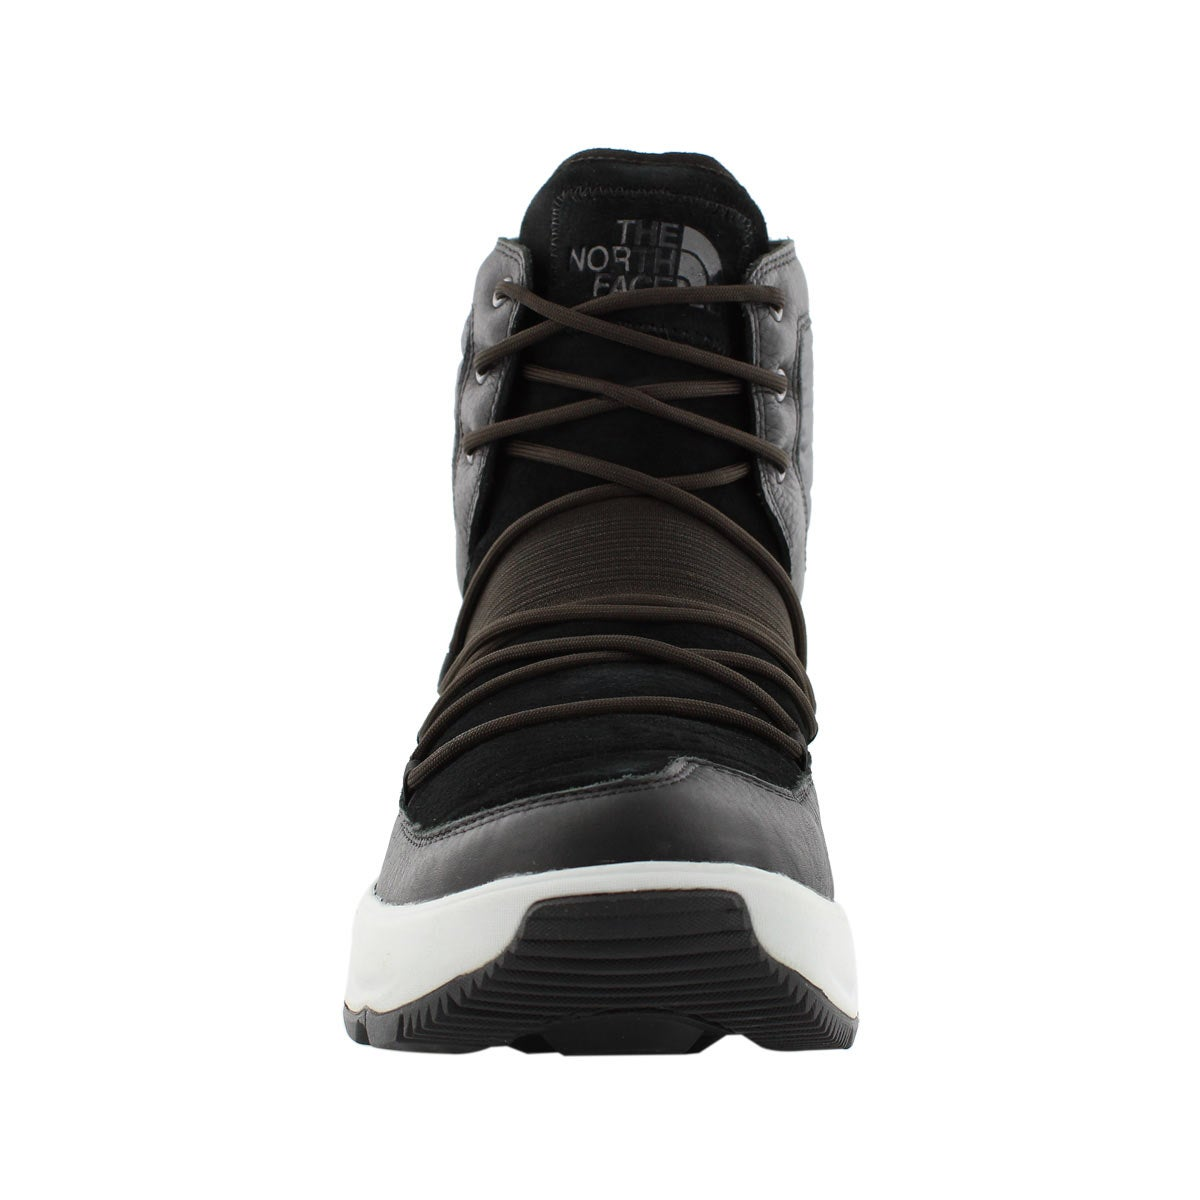 Mns Ozone Park blk/gry wtpf winter boot